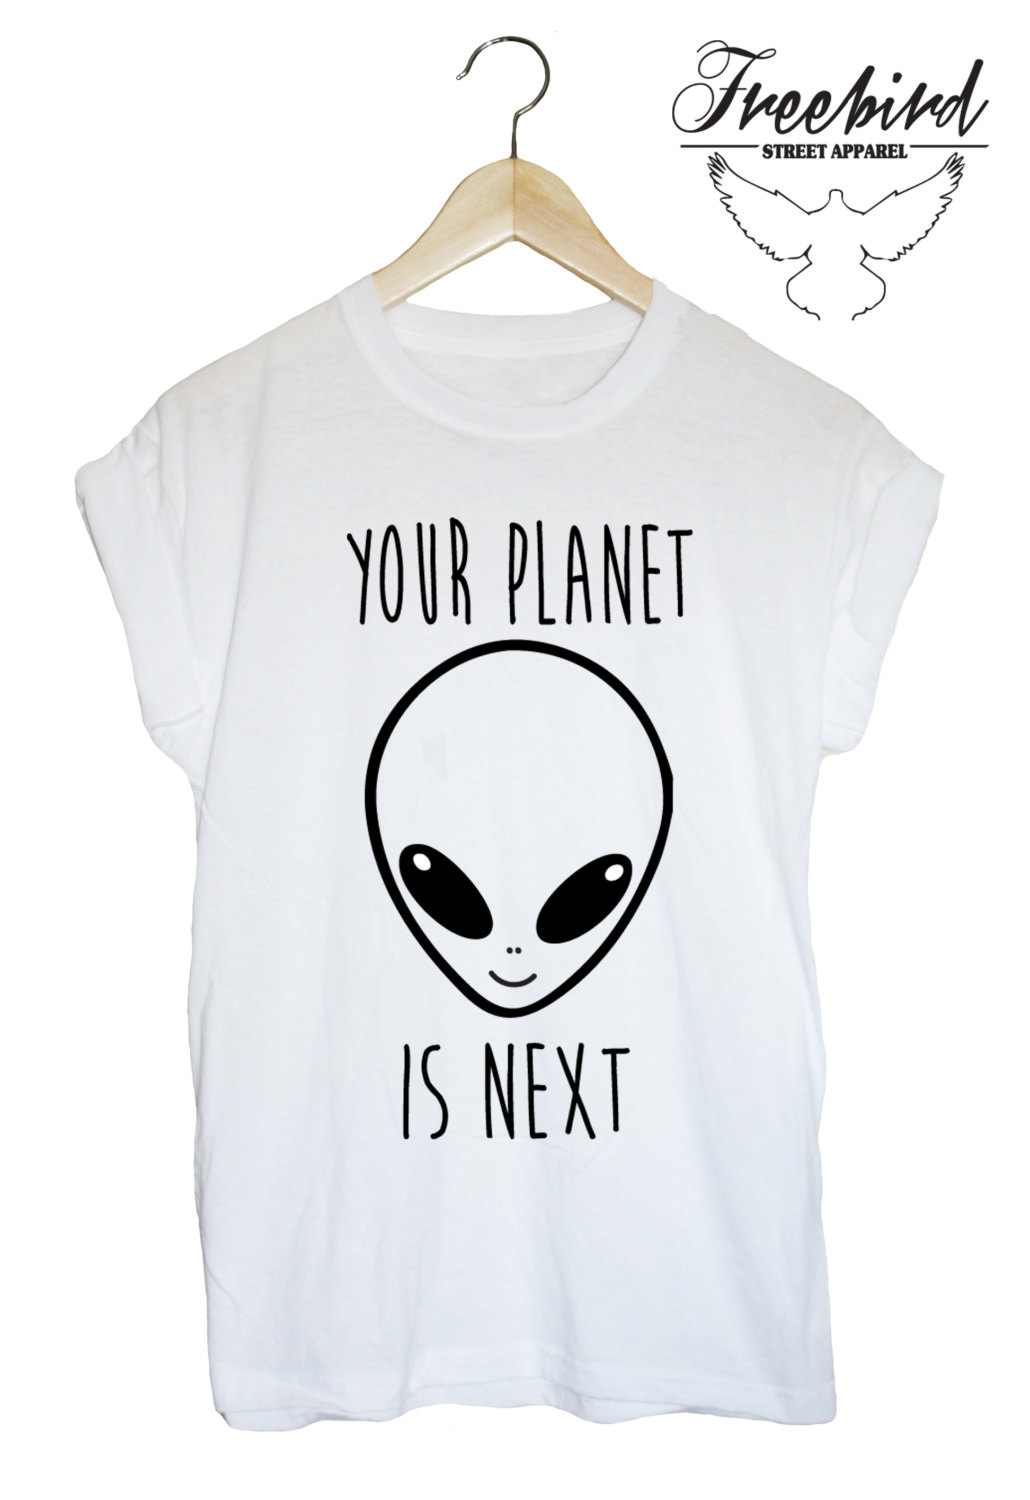 Your planet is next grunge alien ufo tshirt